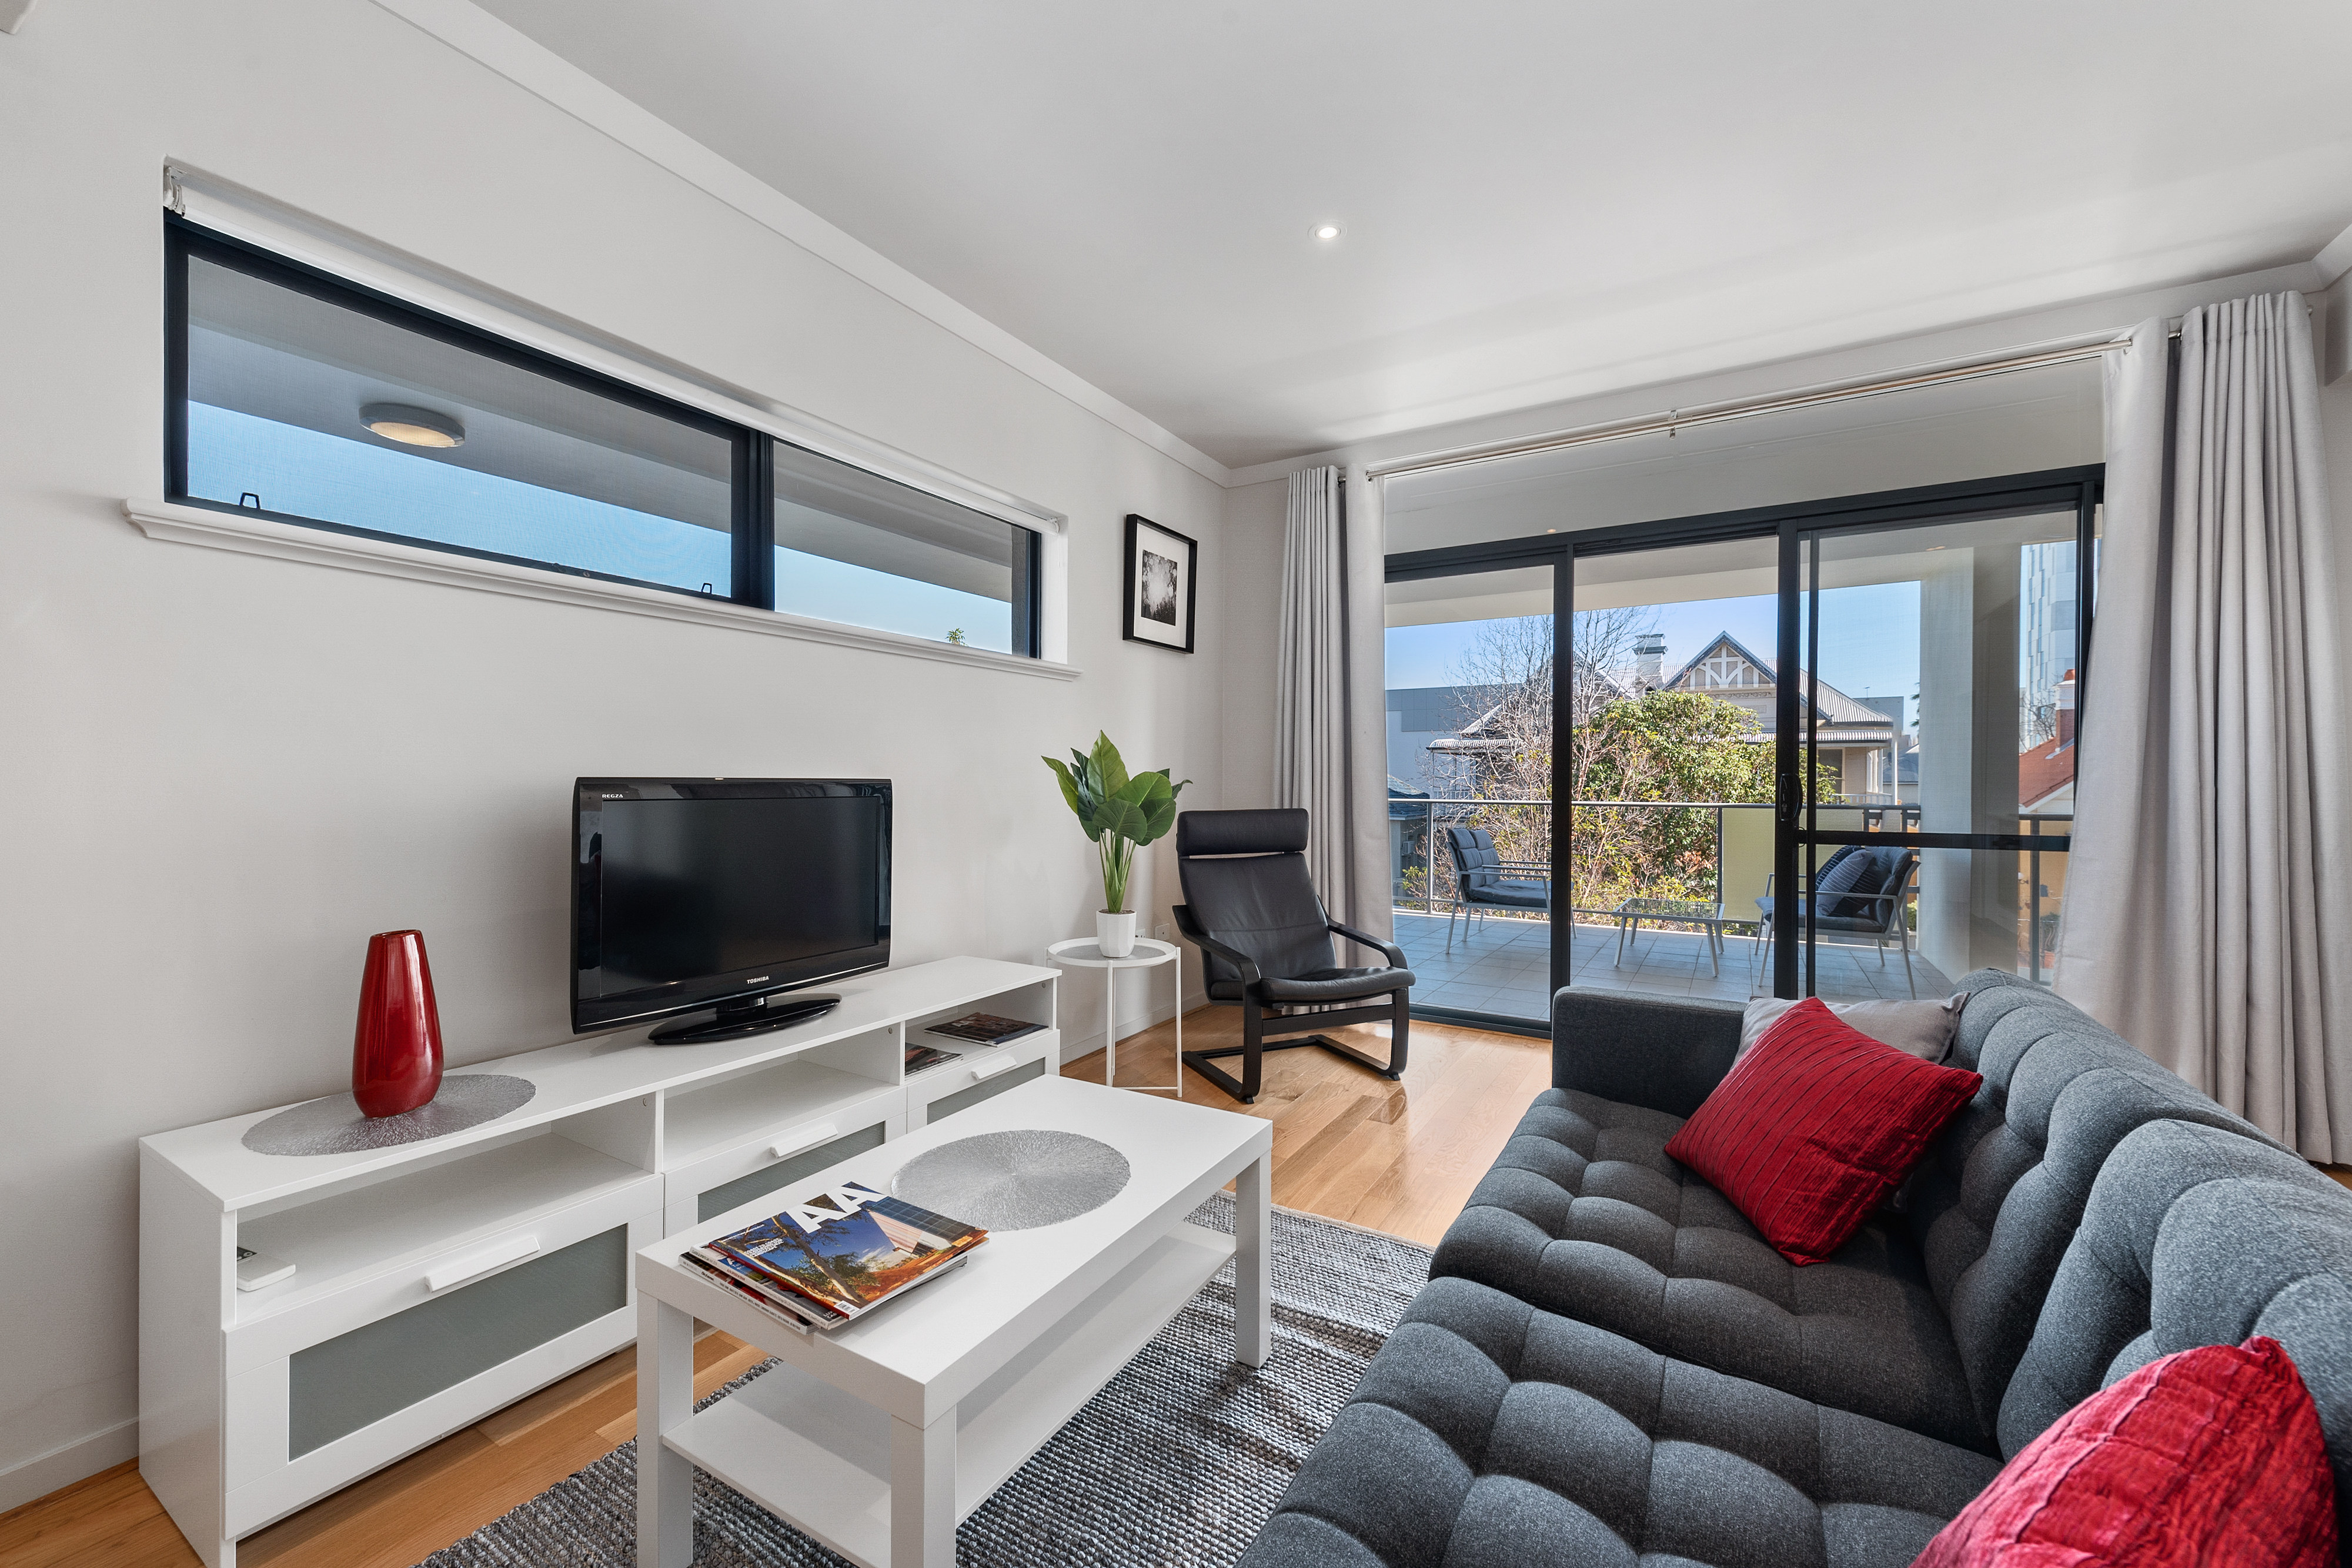 PRINT 202 48 Outram St, West Perth 09